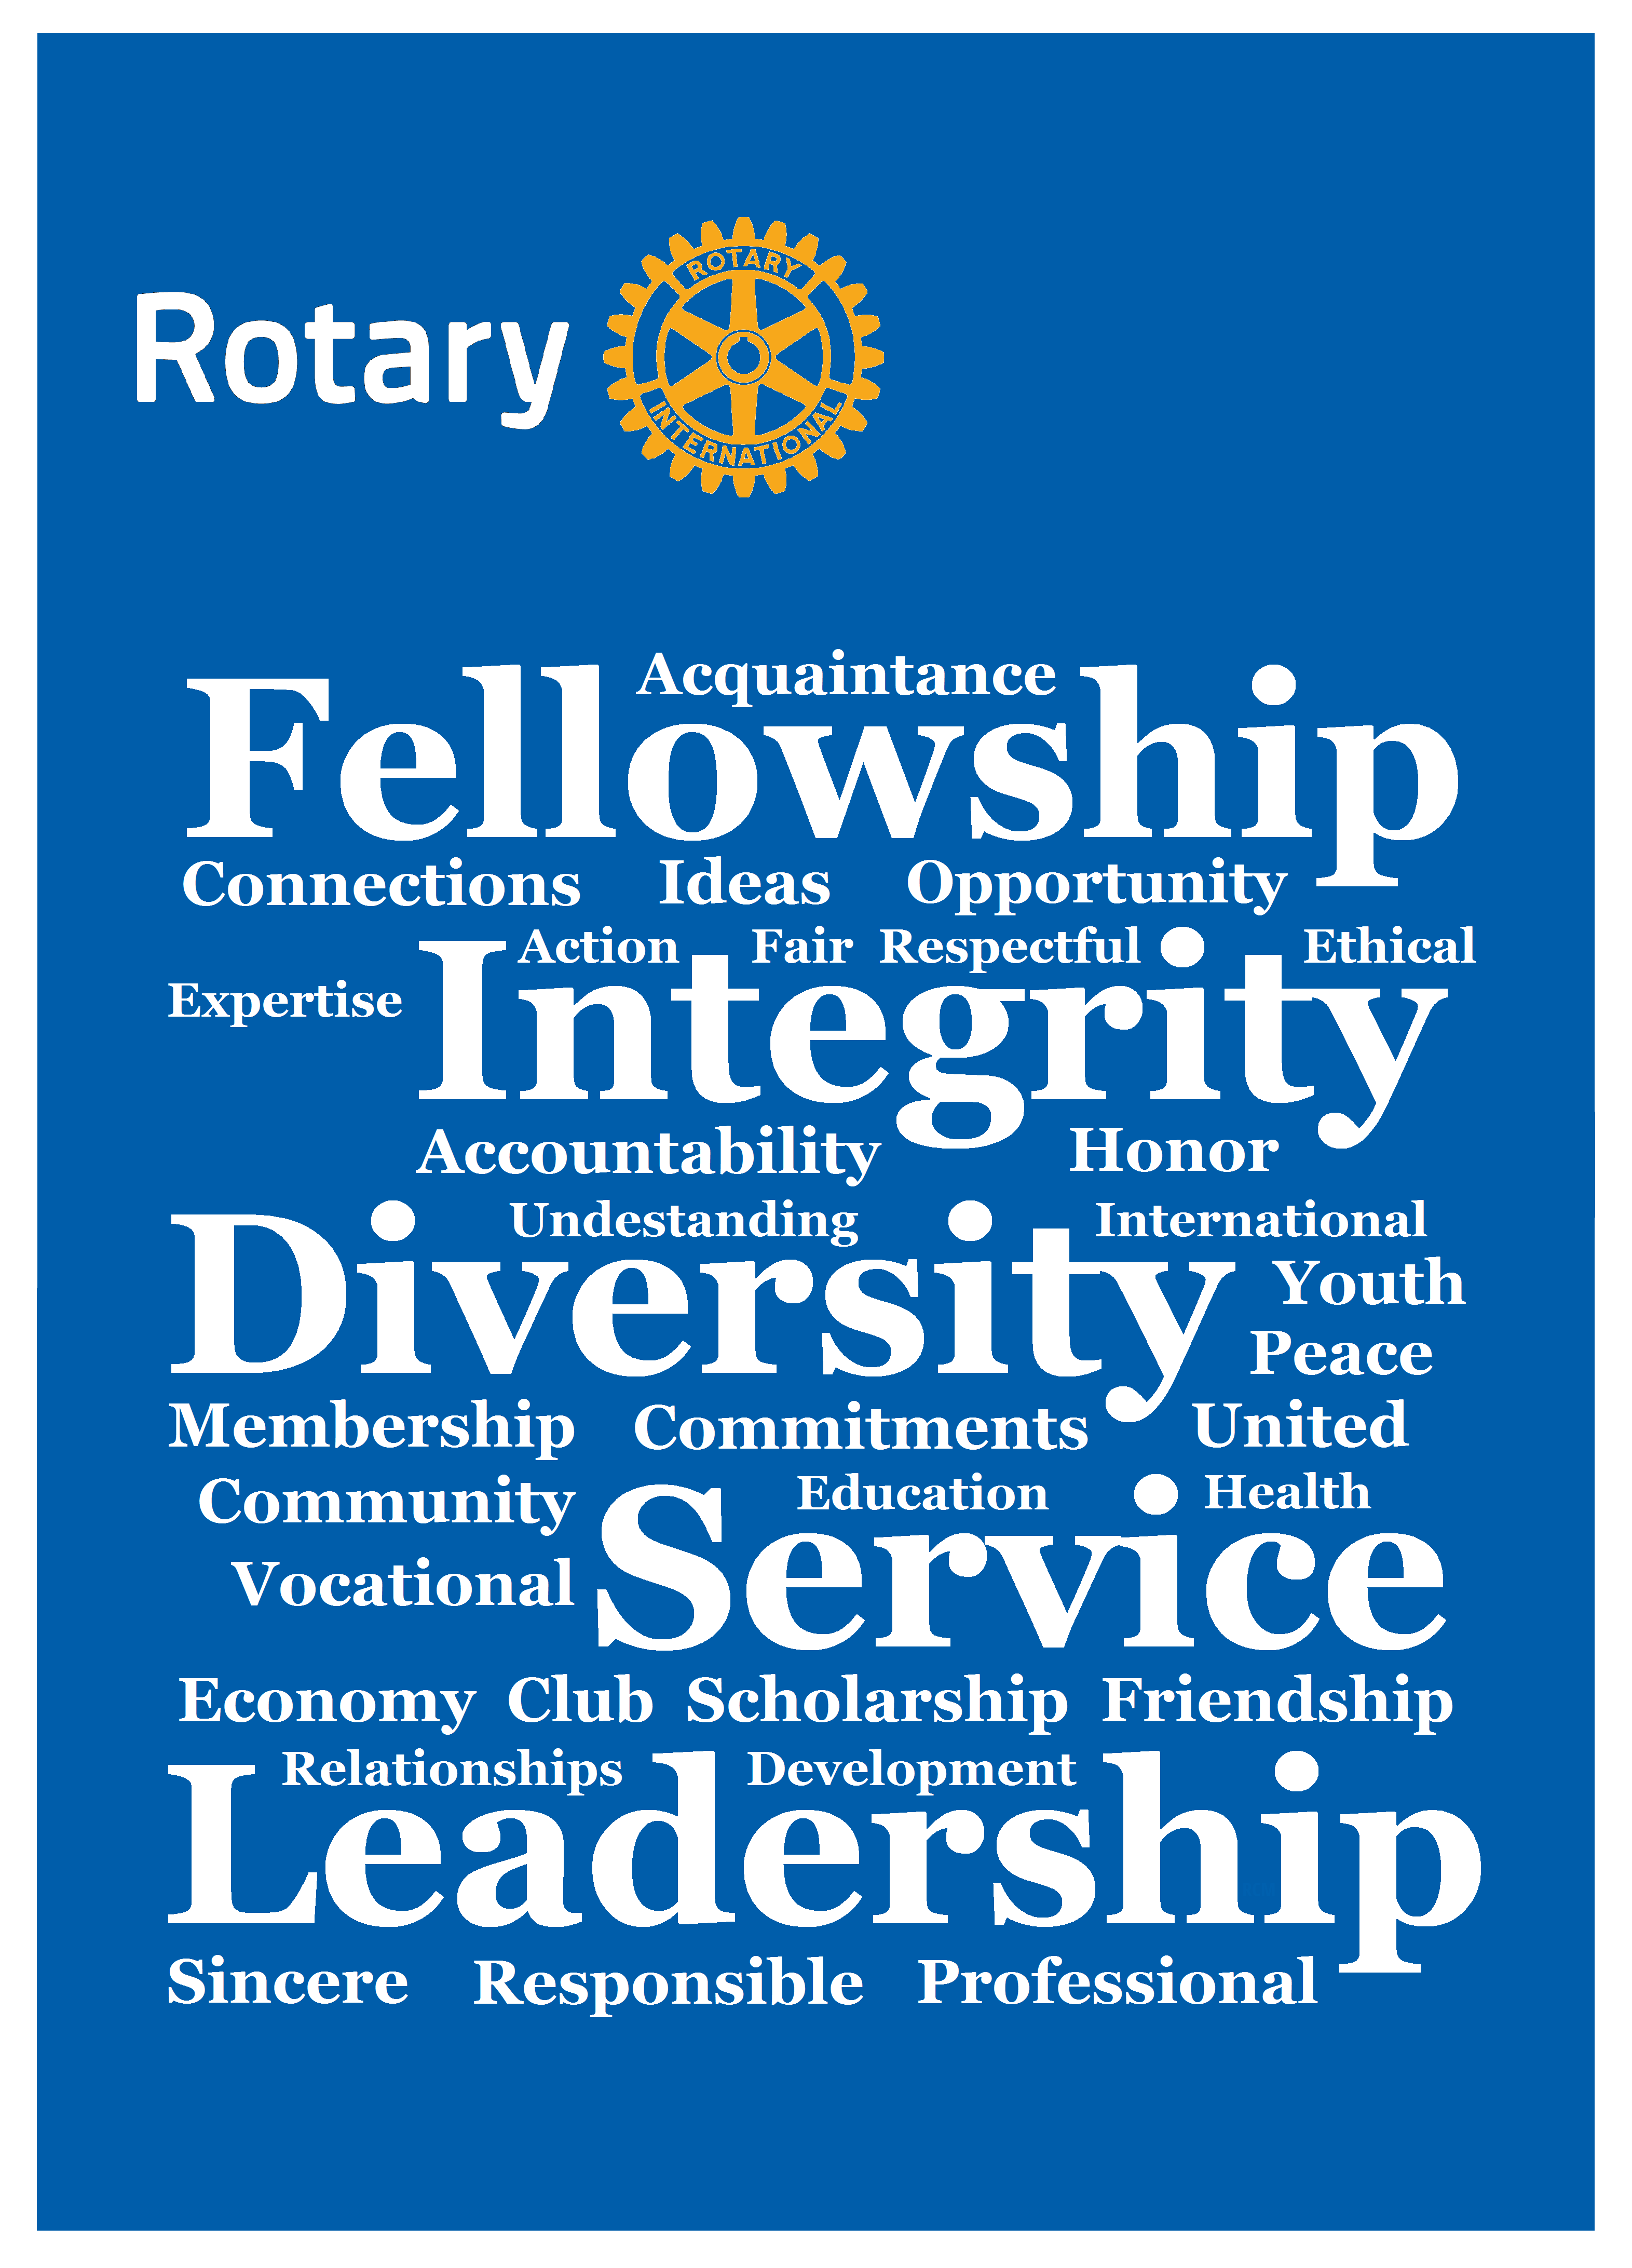 rotary mini poster rotary s core value word cloud by gt rotary club rotary international rotary rotary mini poster rotary s core